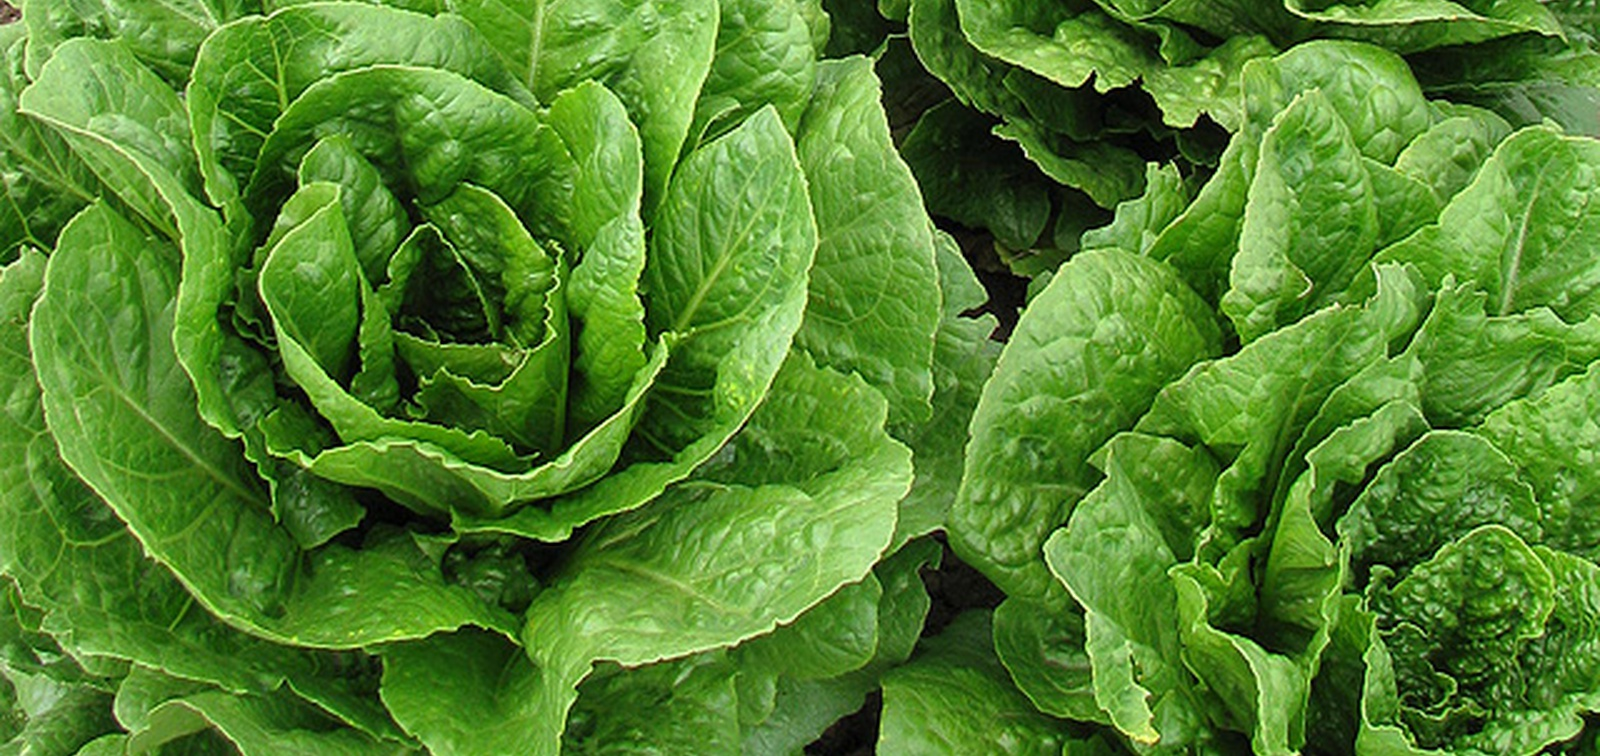 Getting greener: USDA identifies romaine lettuce with longer shelf lives